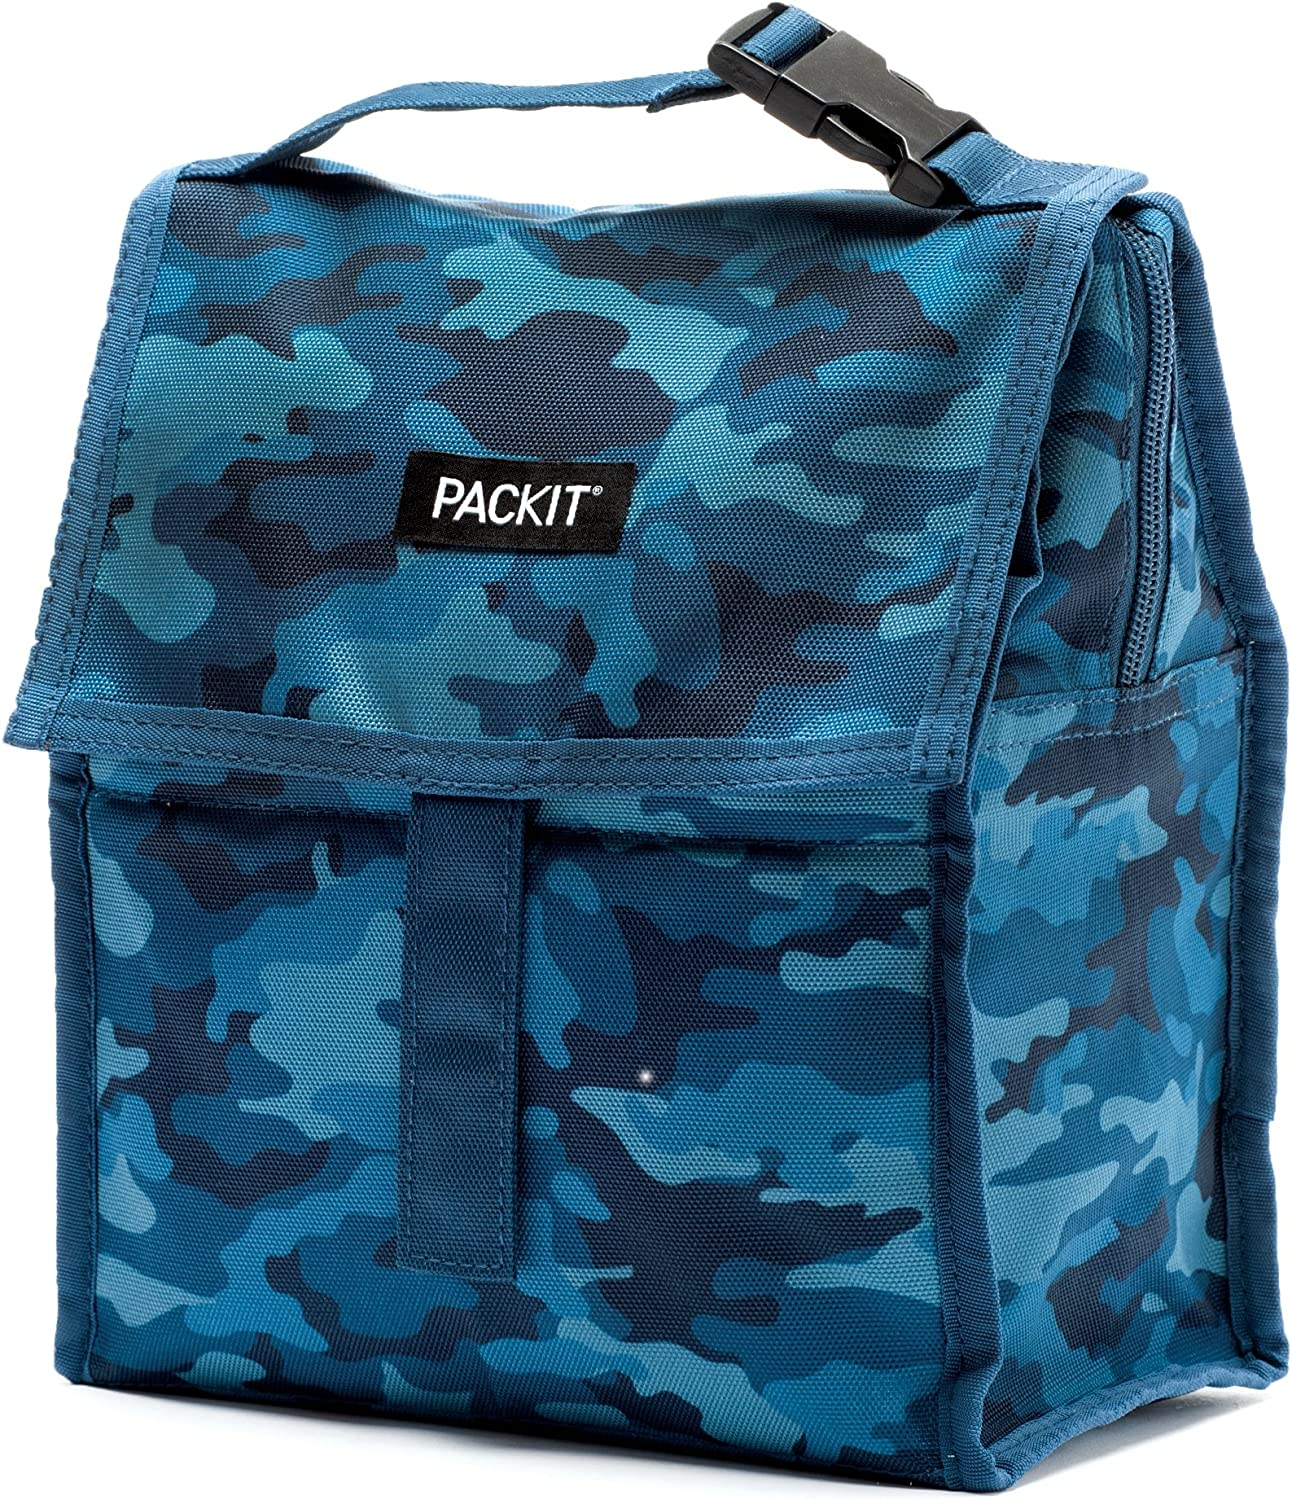 PackIt Freezable Lunch Bag with Zip Closure, Blue Camo